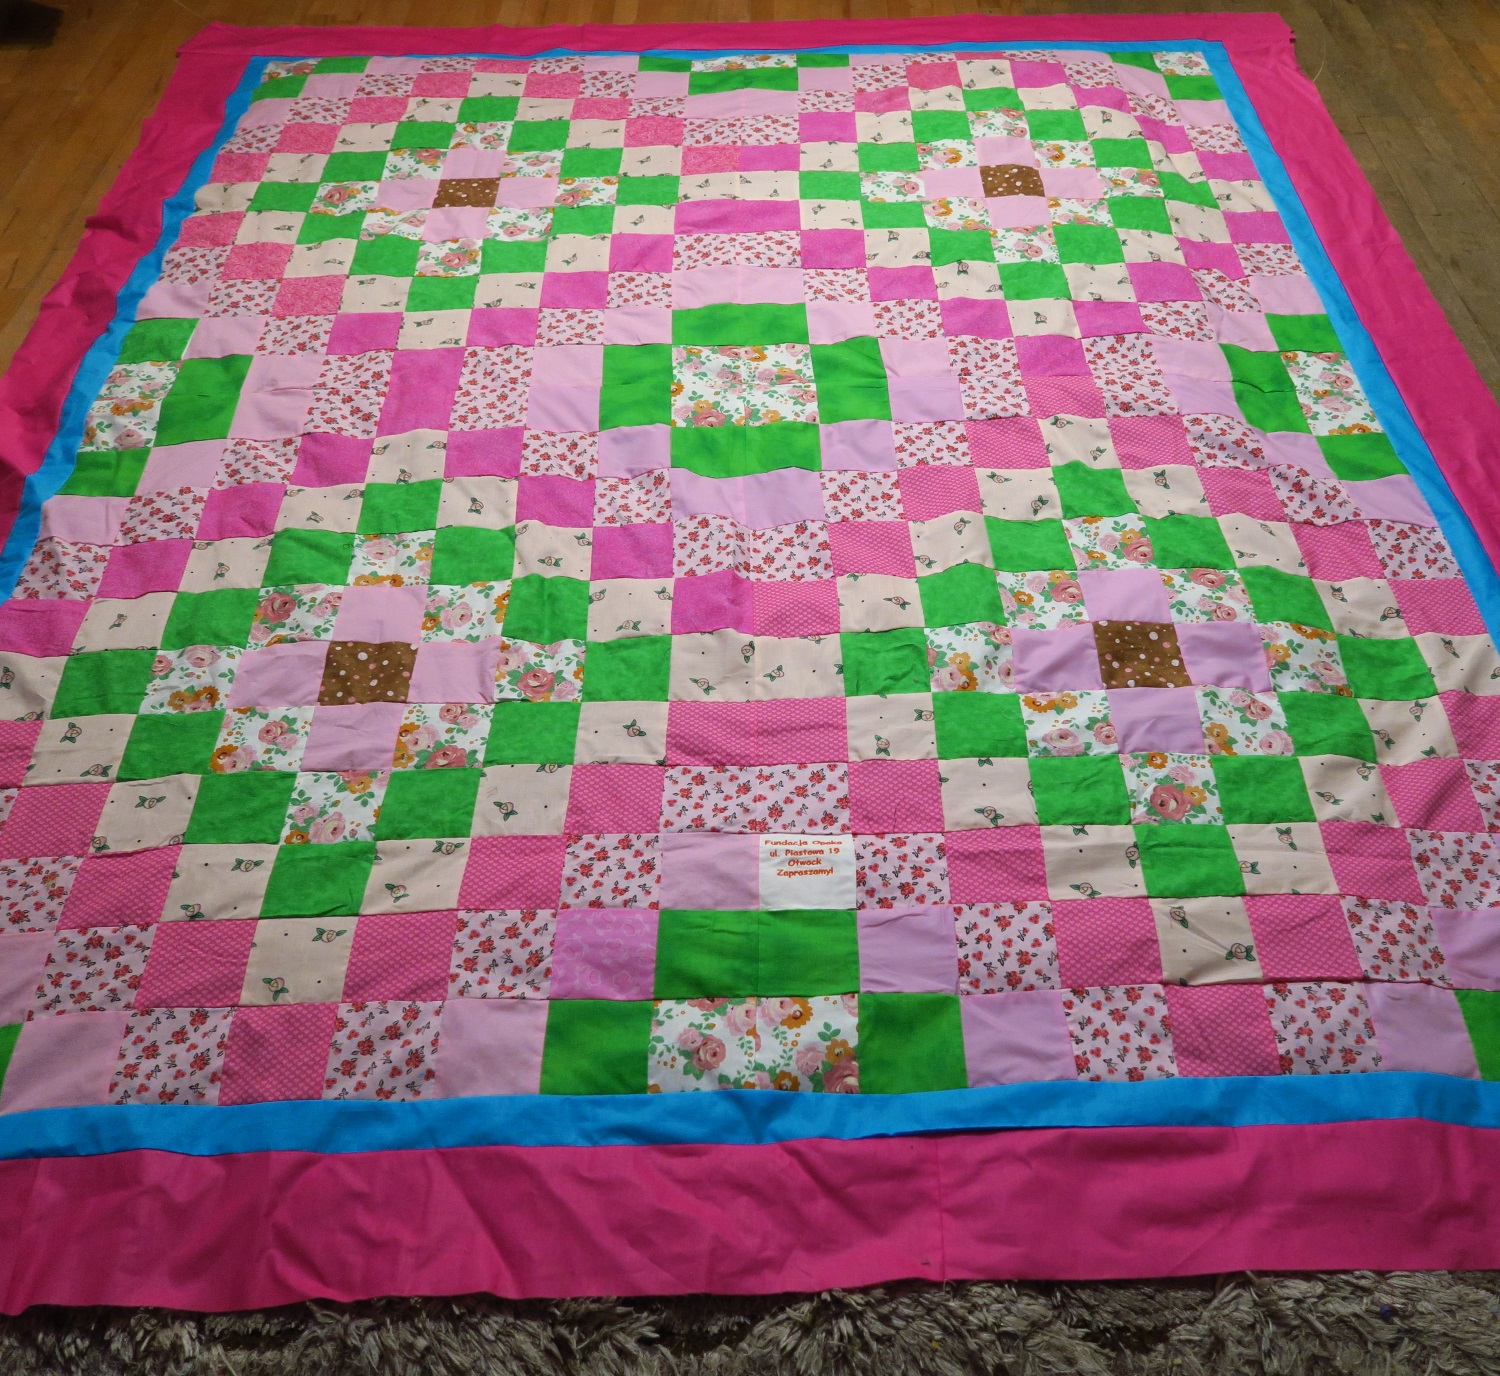 Fran made the center, I added the double border.